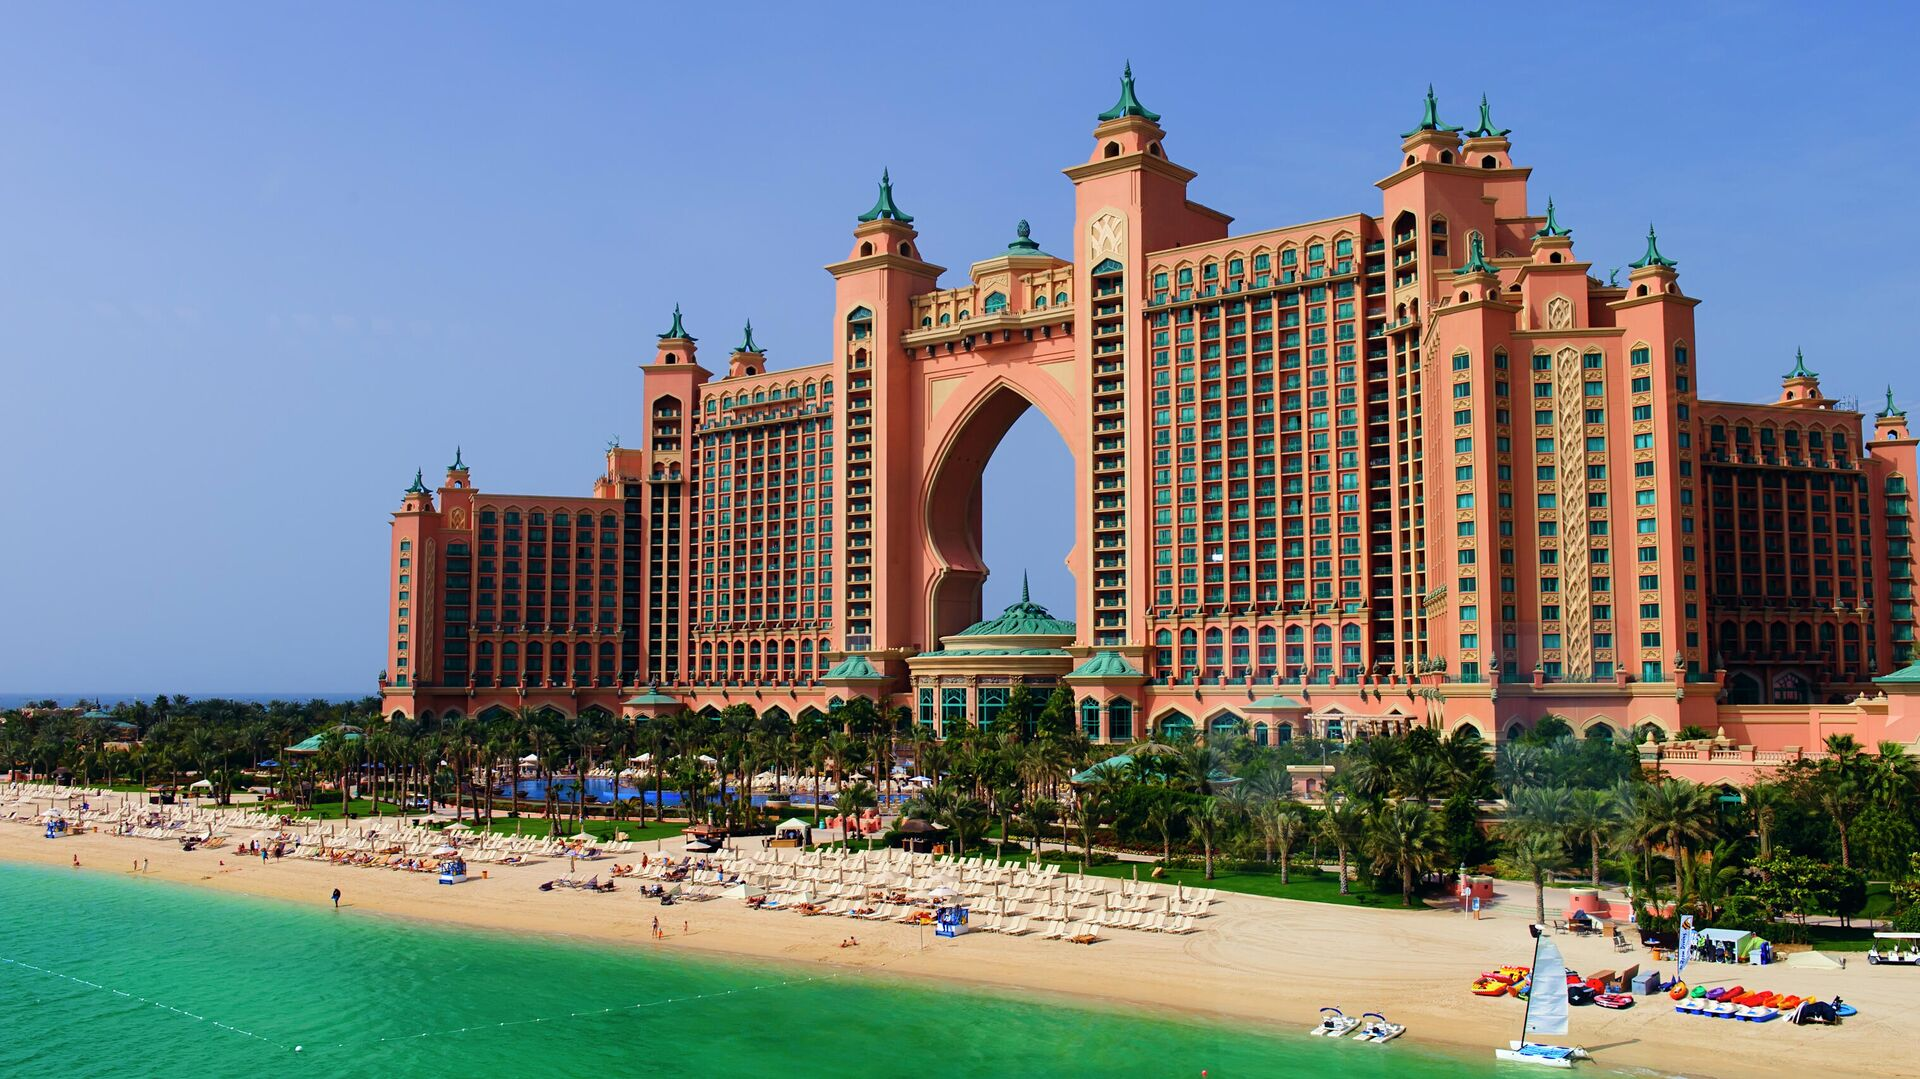 Курортный комплекс Atlantis The Palm в Дубае - РИА Новости, 1920, 21.01.2021